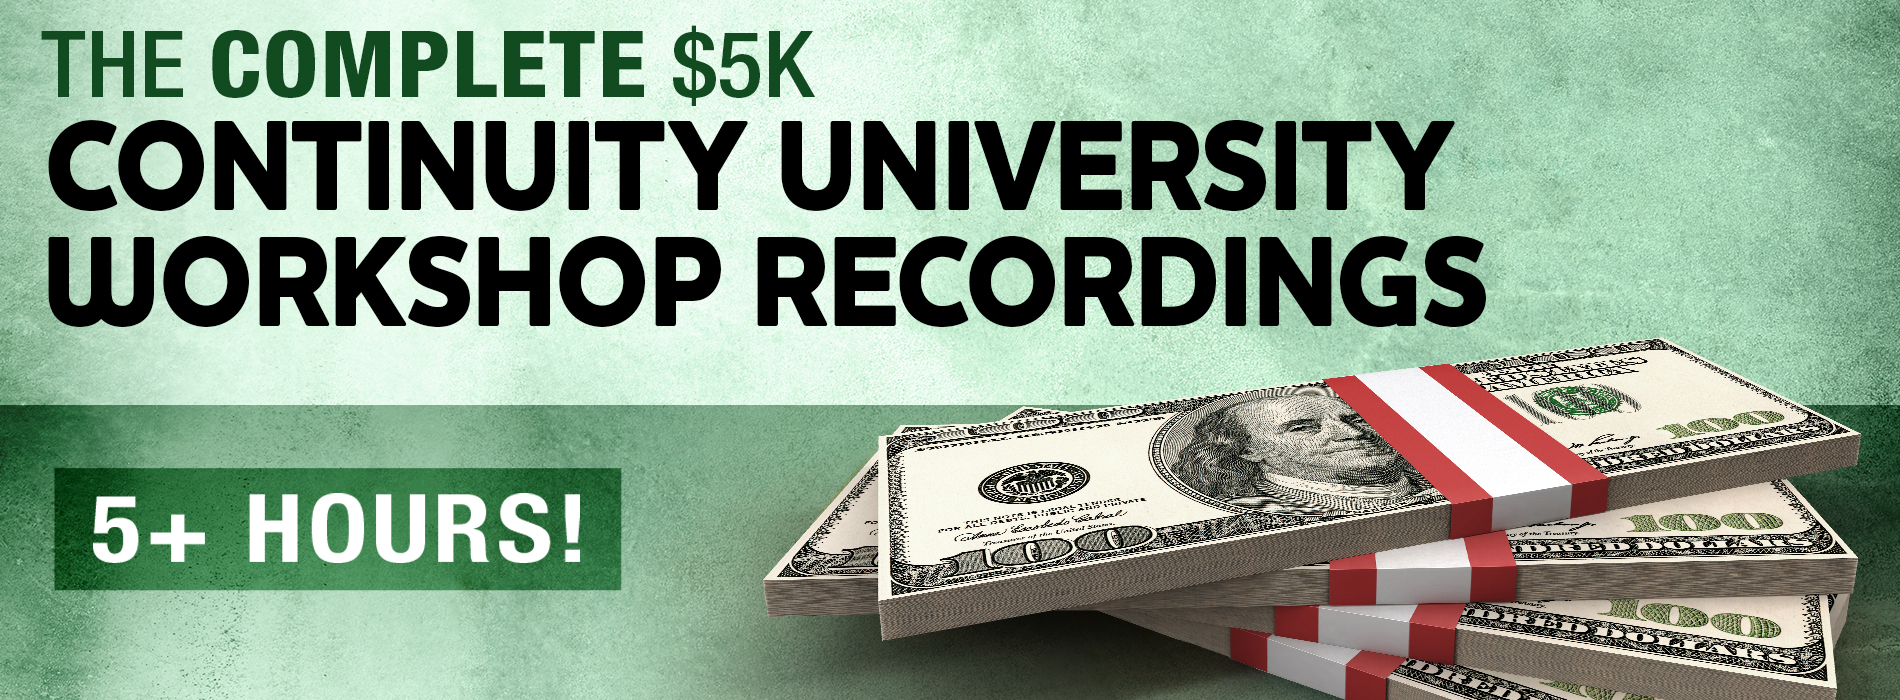 $5K Continuity University Workshop Recordings